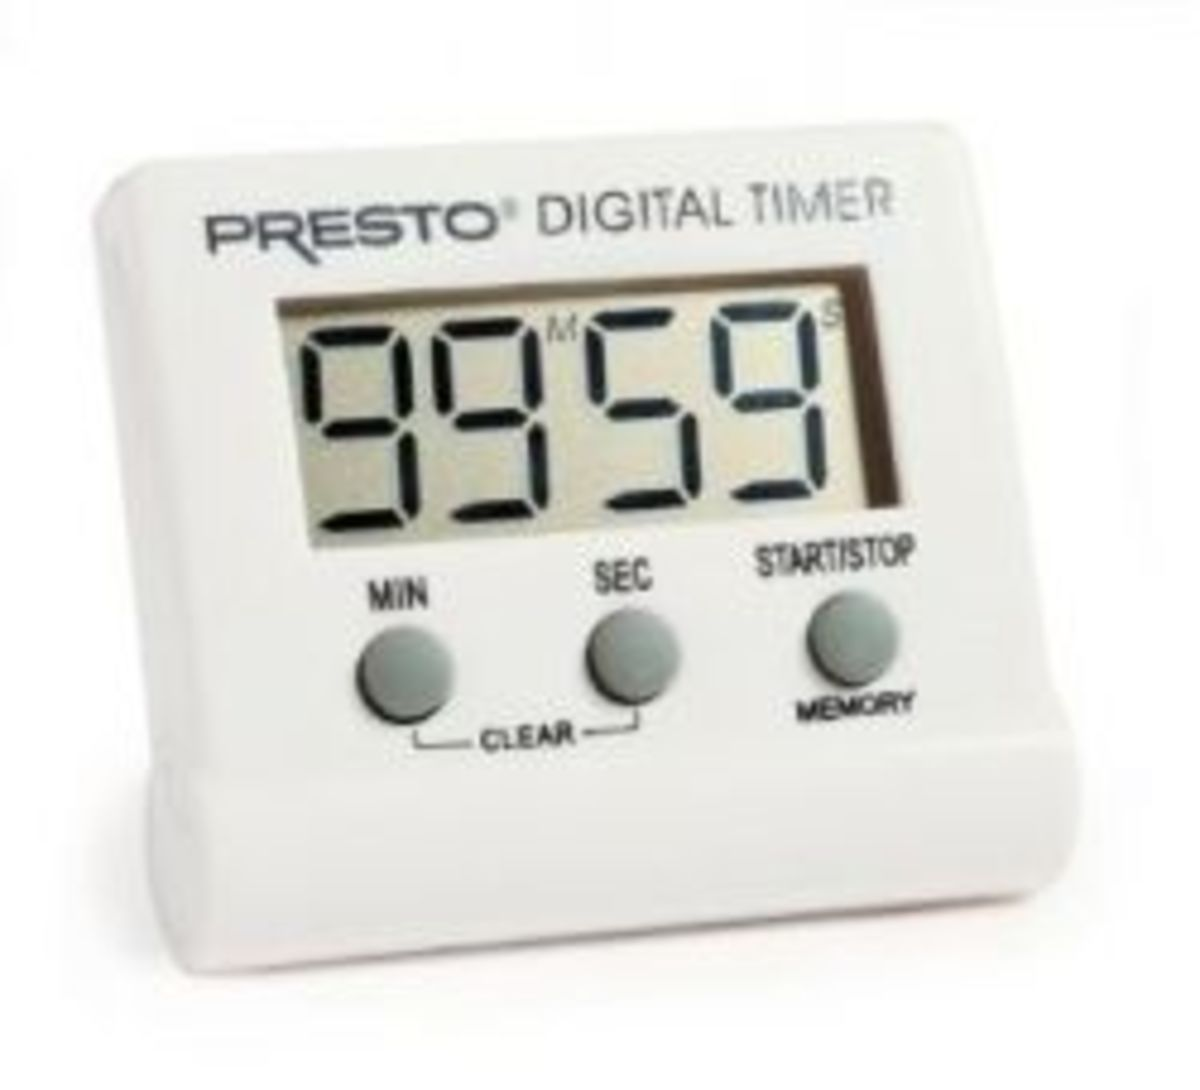 Image credit: http://www.amazon.com/Presto-04213-Electronic-Digital-Timer/dp/B001CQG618/ref=sr_1_1?ie=UTF8&qid=1348062178&sr=8-1&keywords=digital+timer